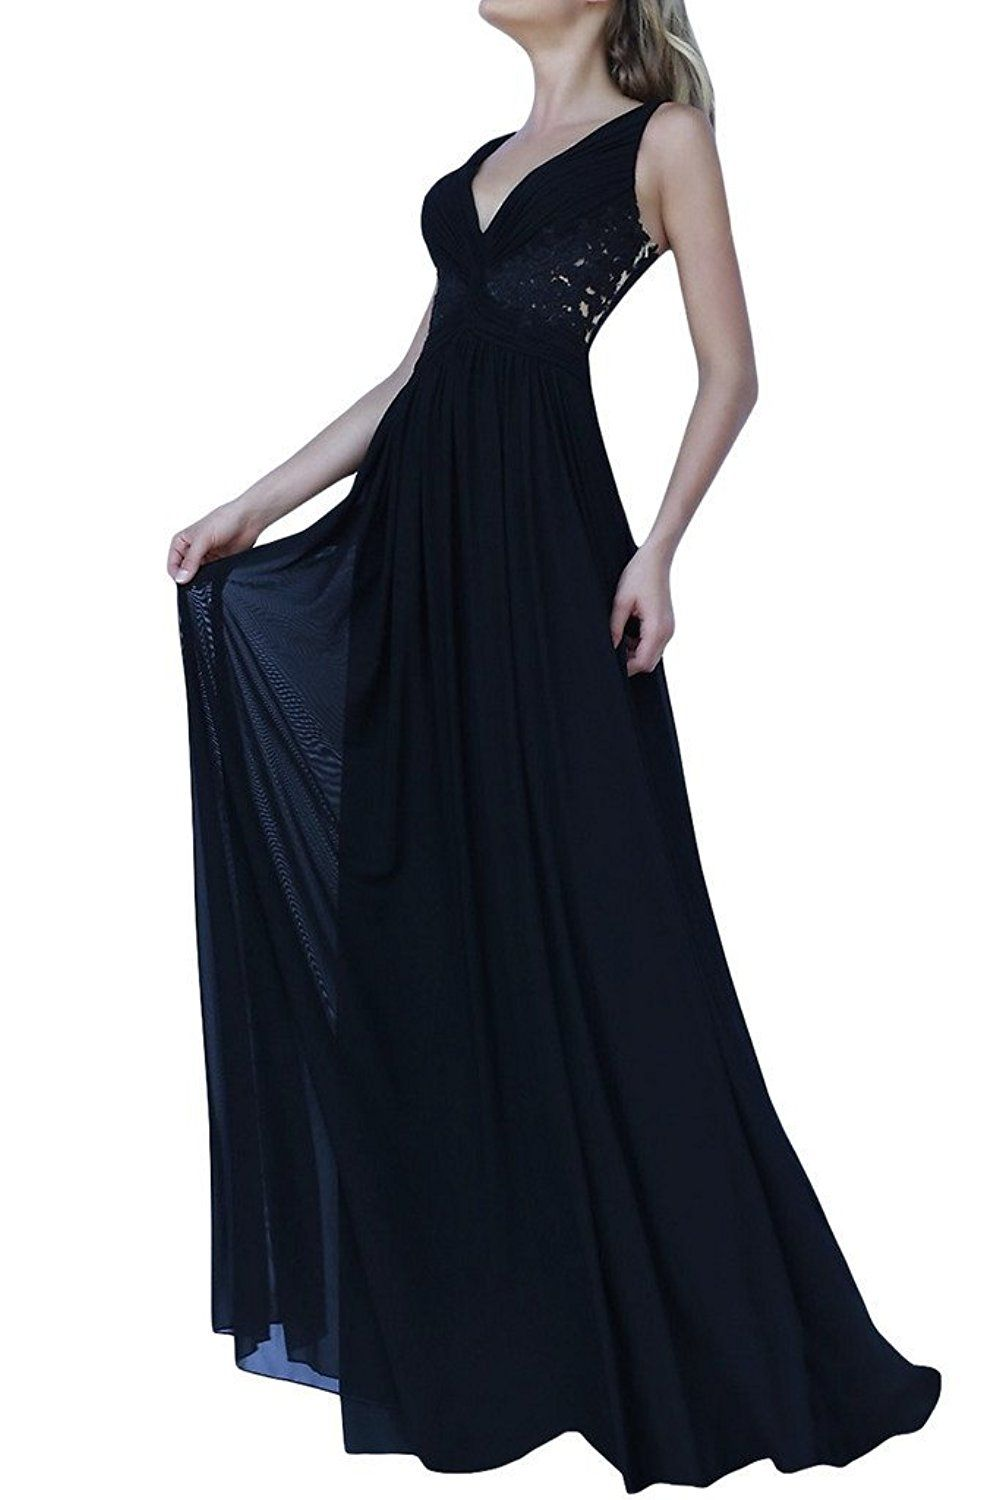 Ivydressing chiffon and lace aline deep vneck long gowns party